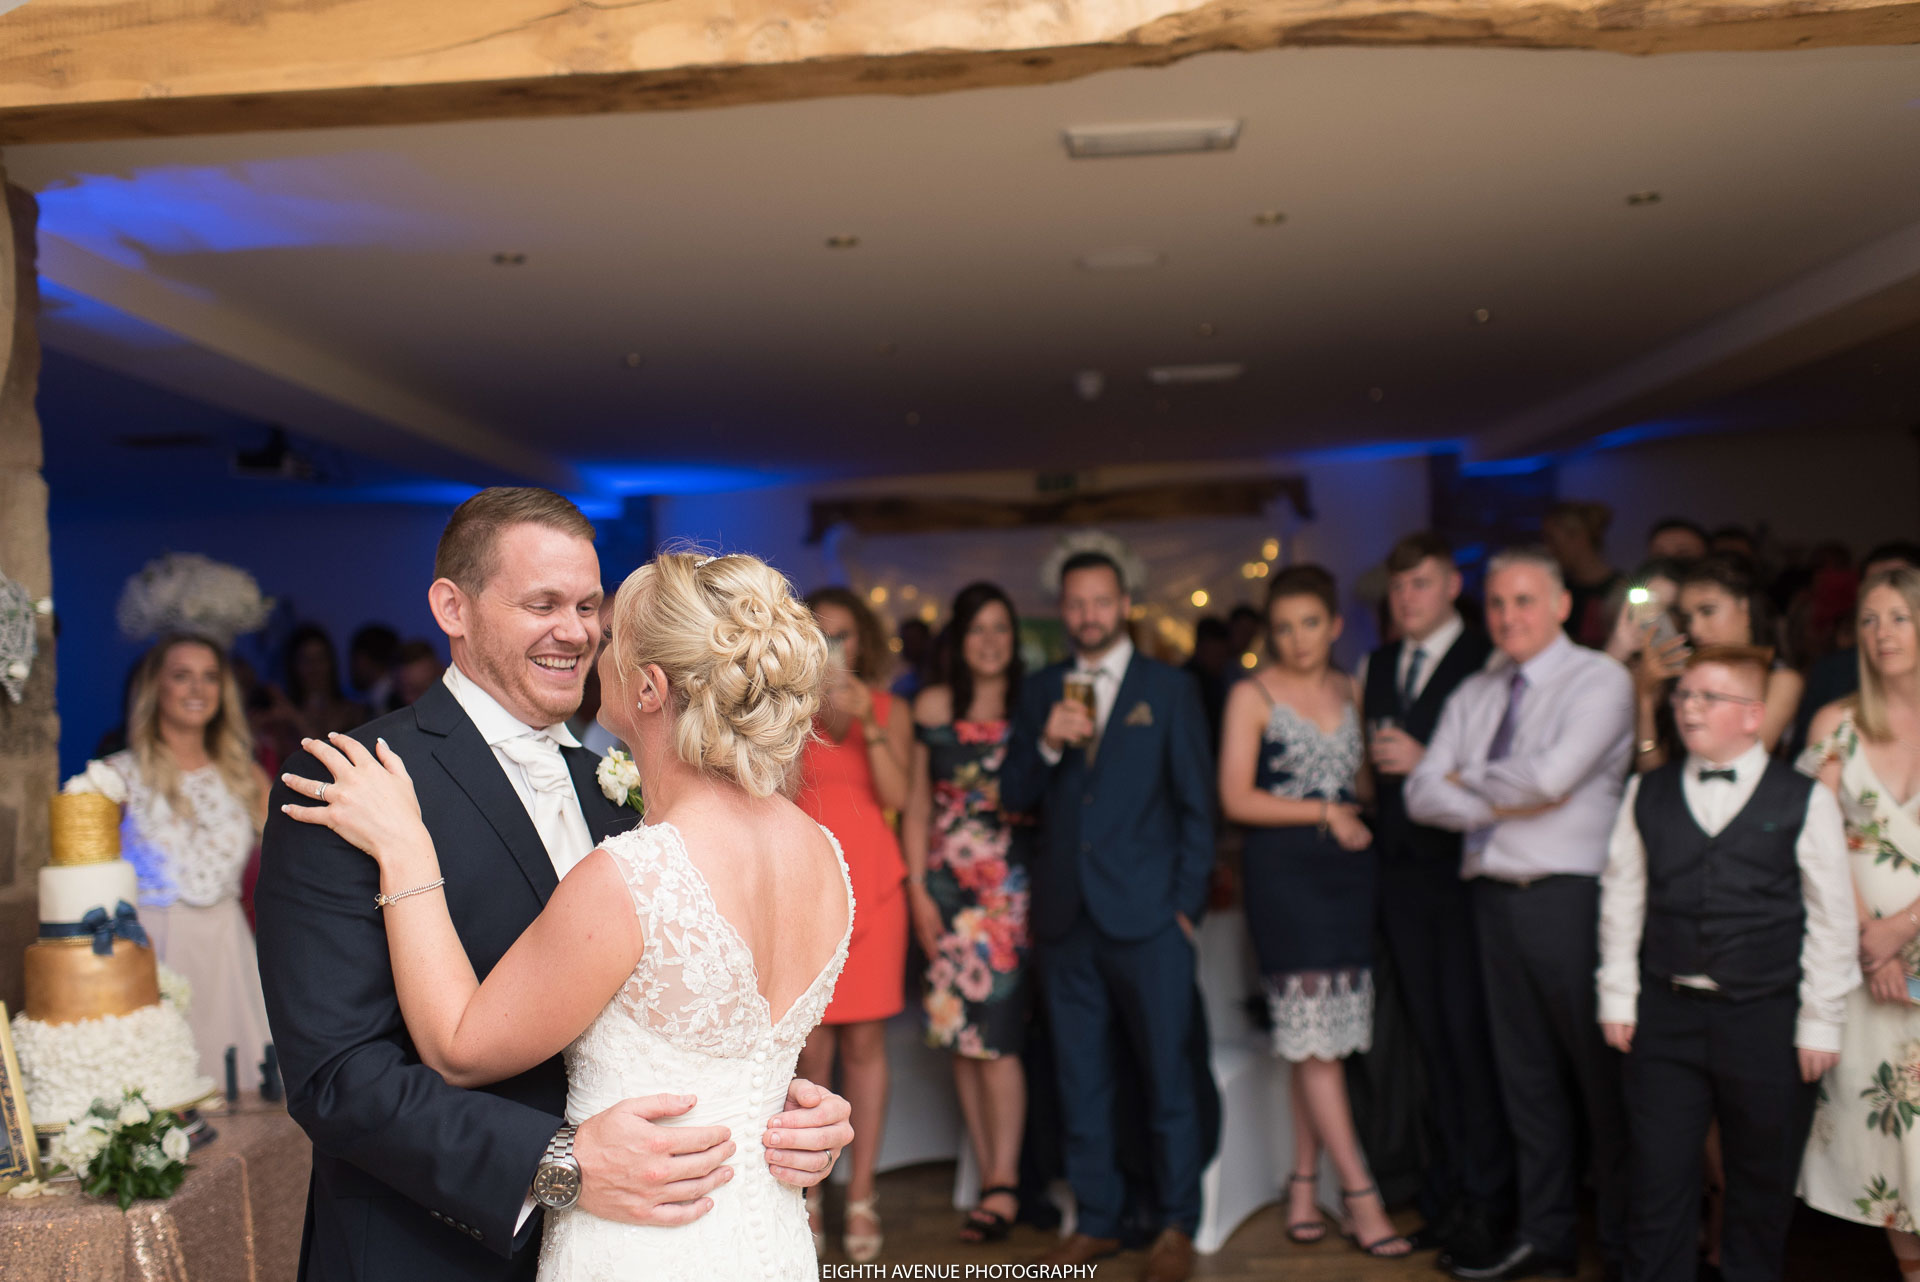 Bride and groom first dance at Beeston Manor